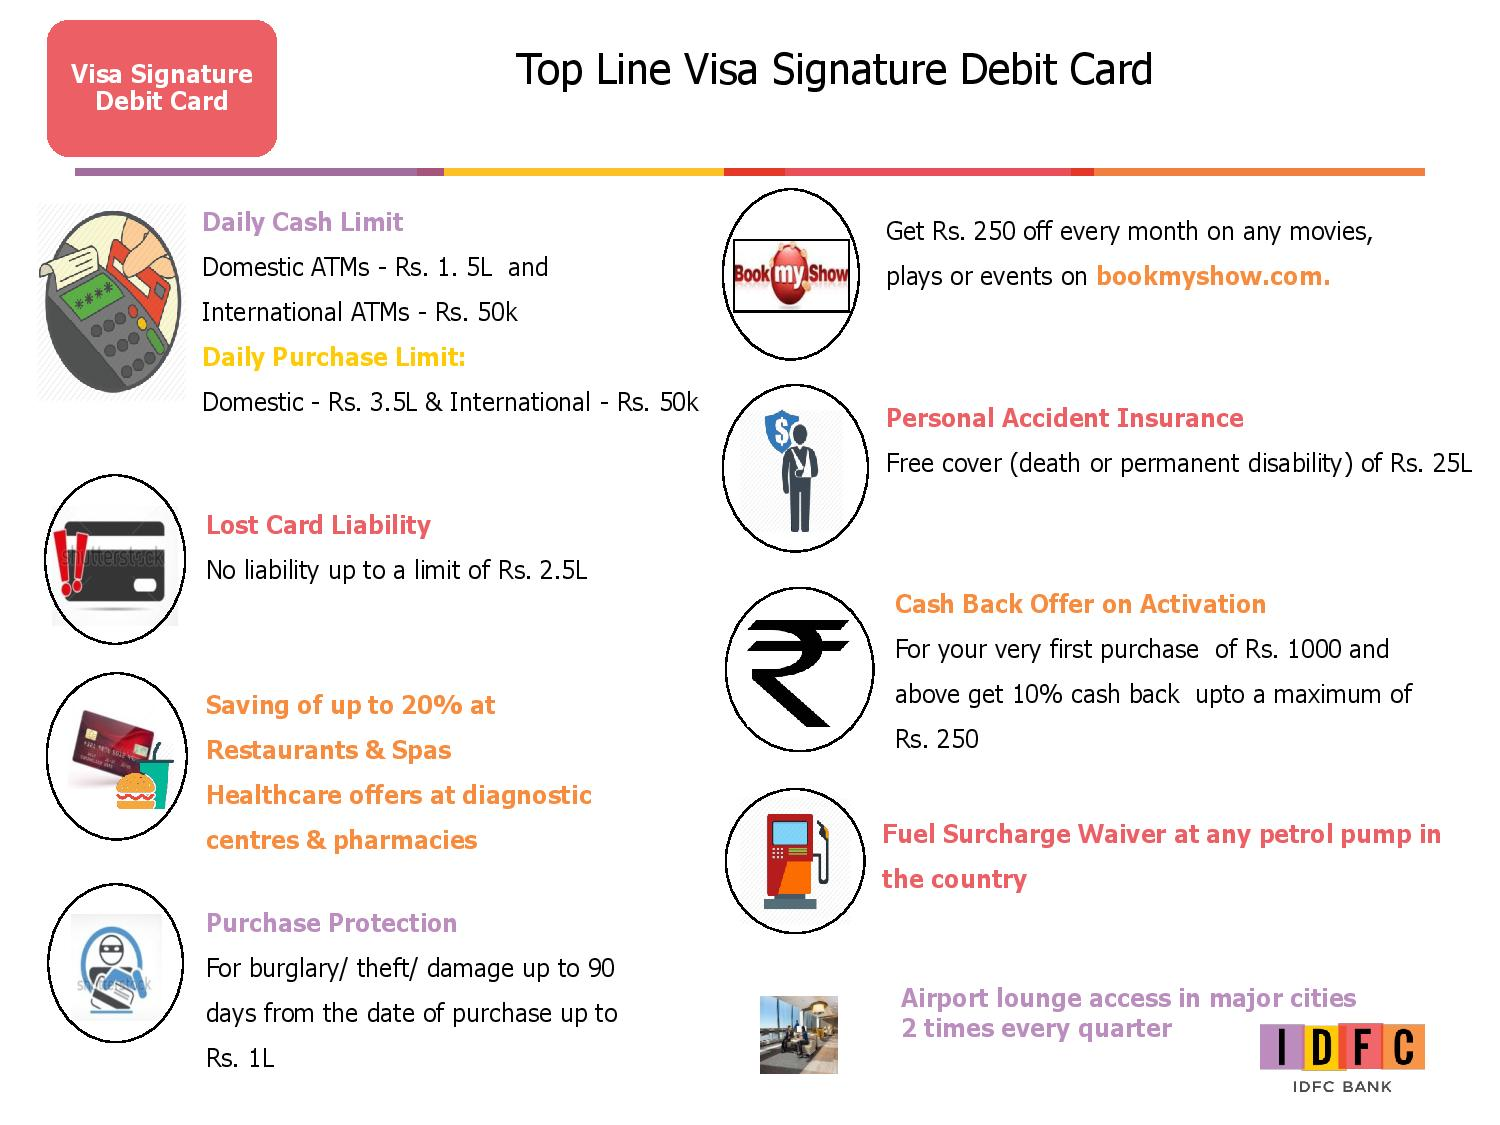 Visa Signature Debit Card